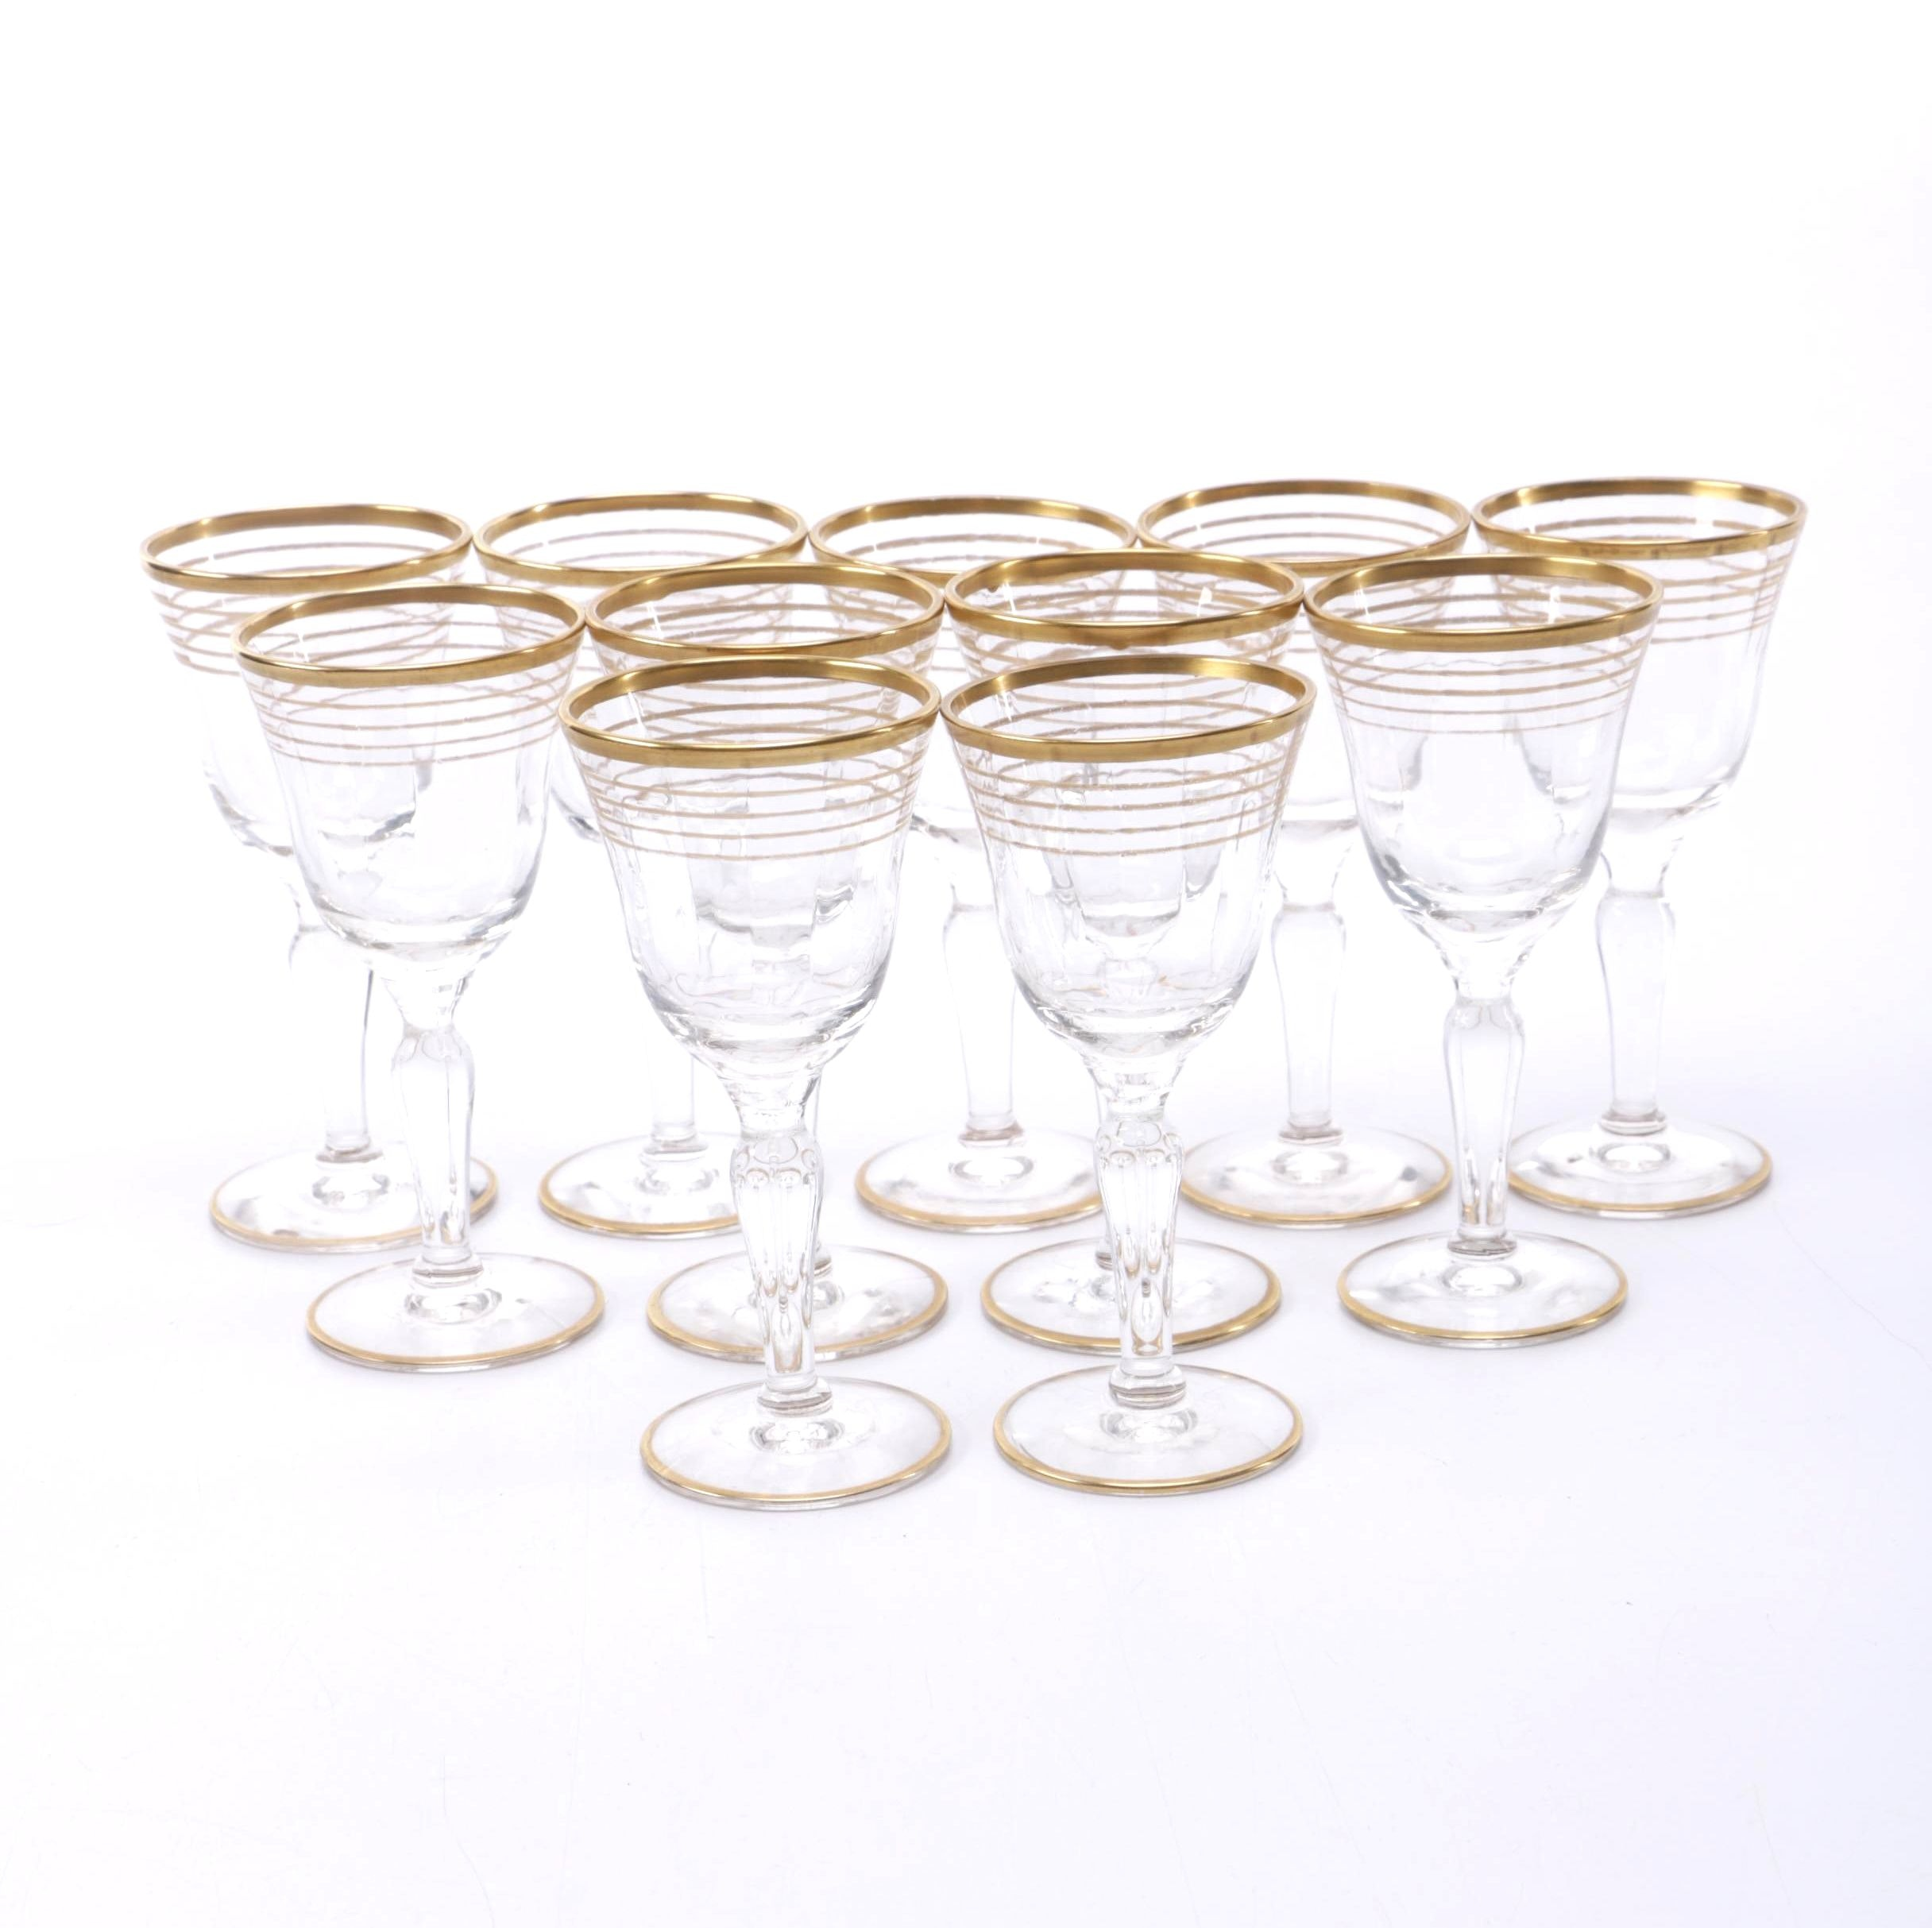 Gold Rimmed Cordial Glasses